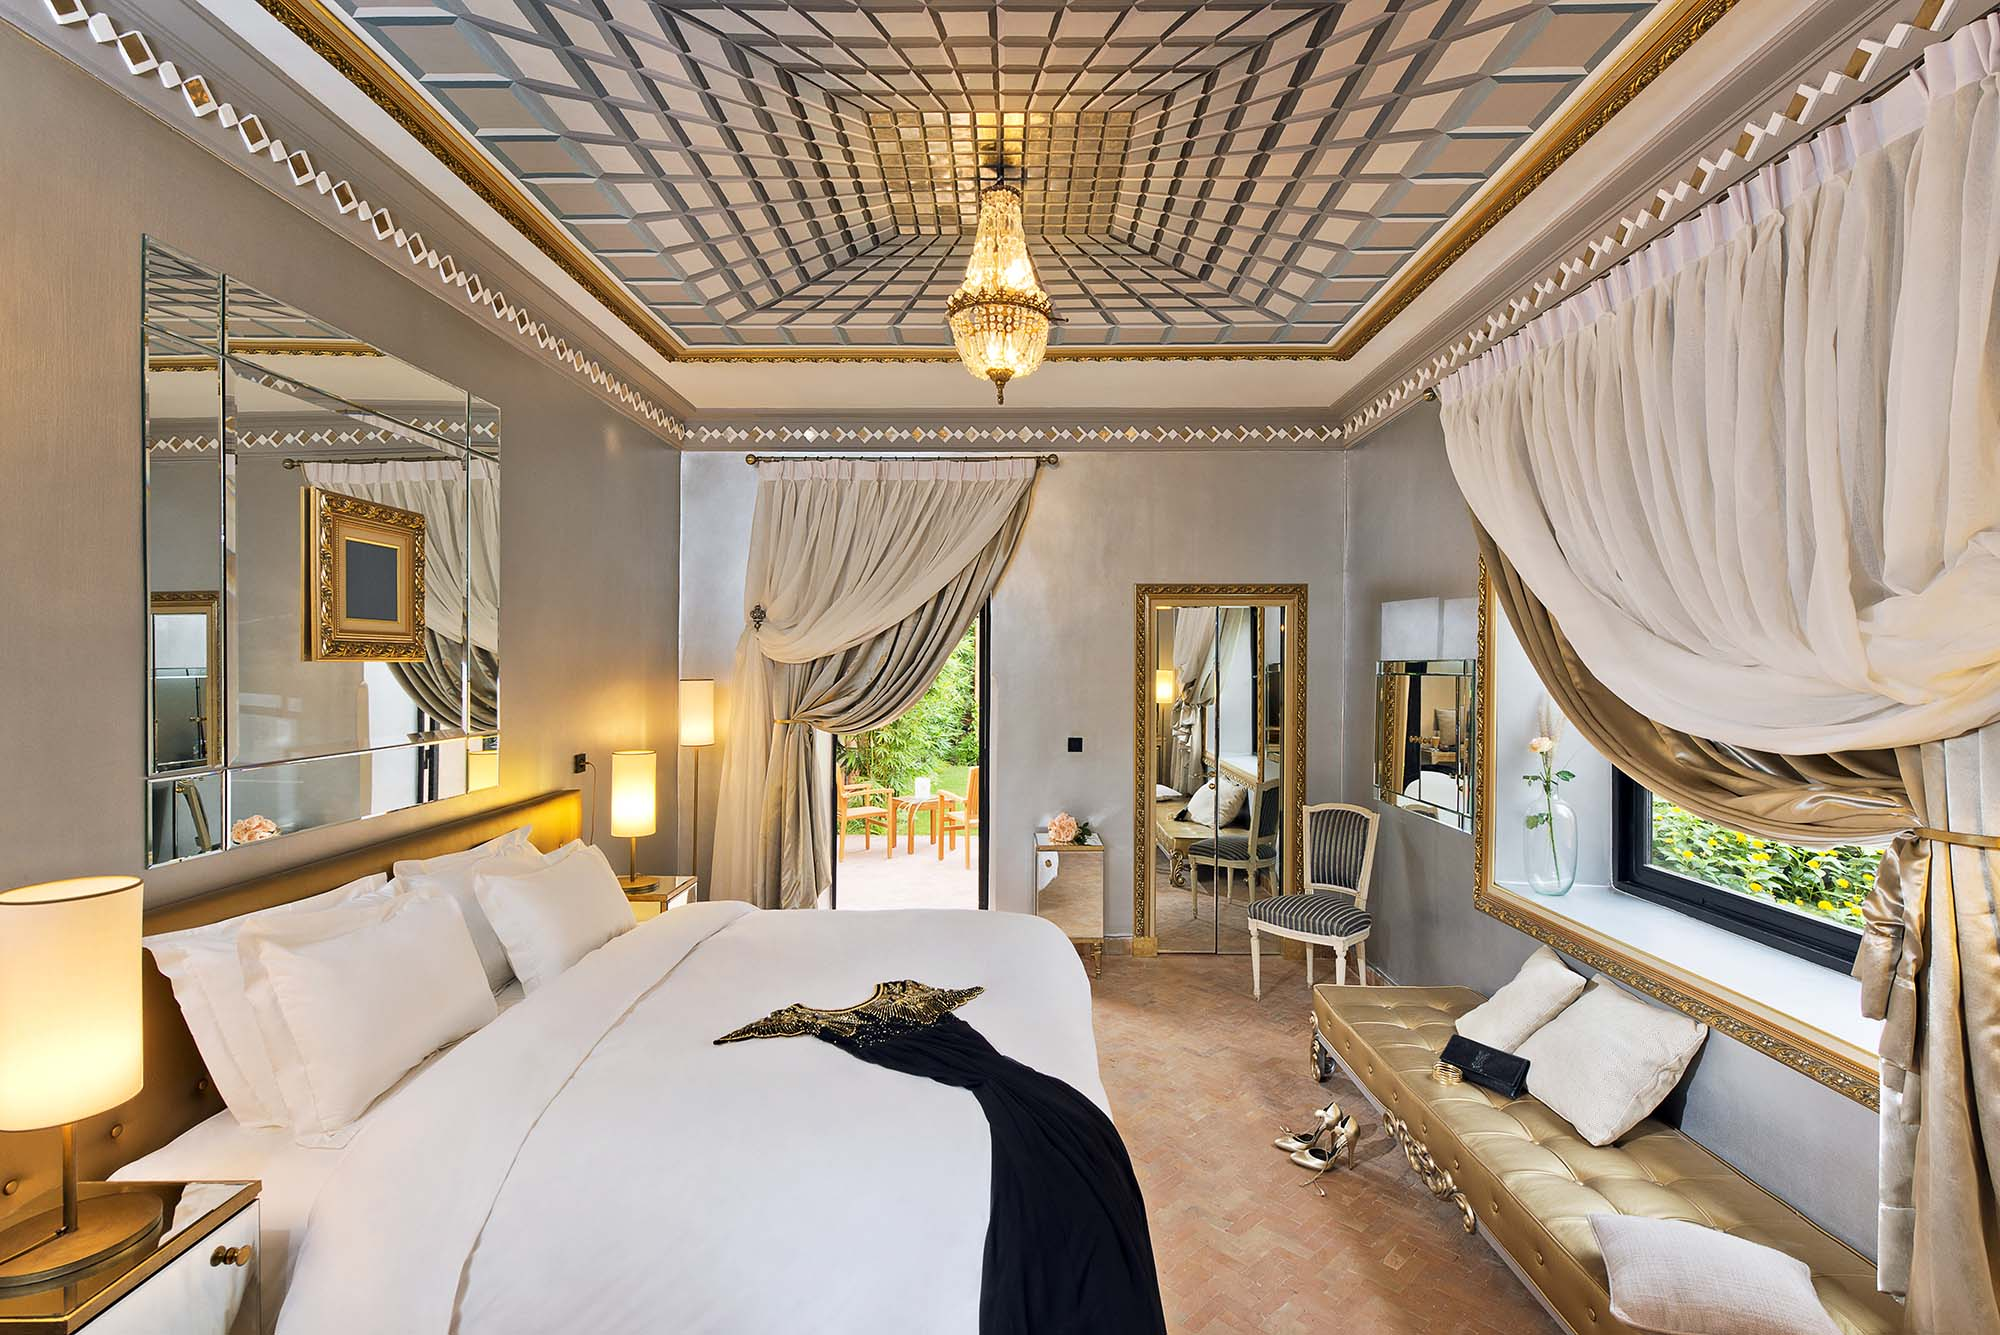 https://www.thesourcemarrakech.com/wp-content/uploads/2017/06/chambre-deluxe-Made-in-Heaven-maison-hotes-The-Source-Marrakech.jpg